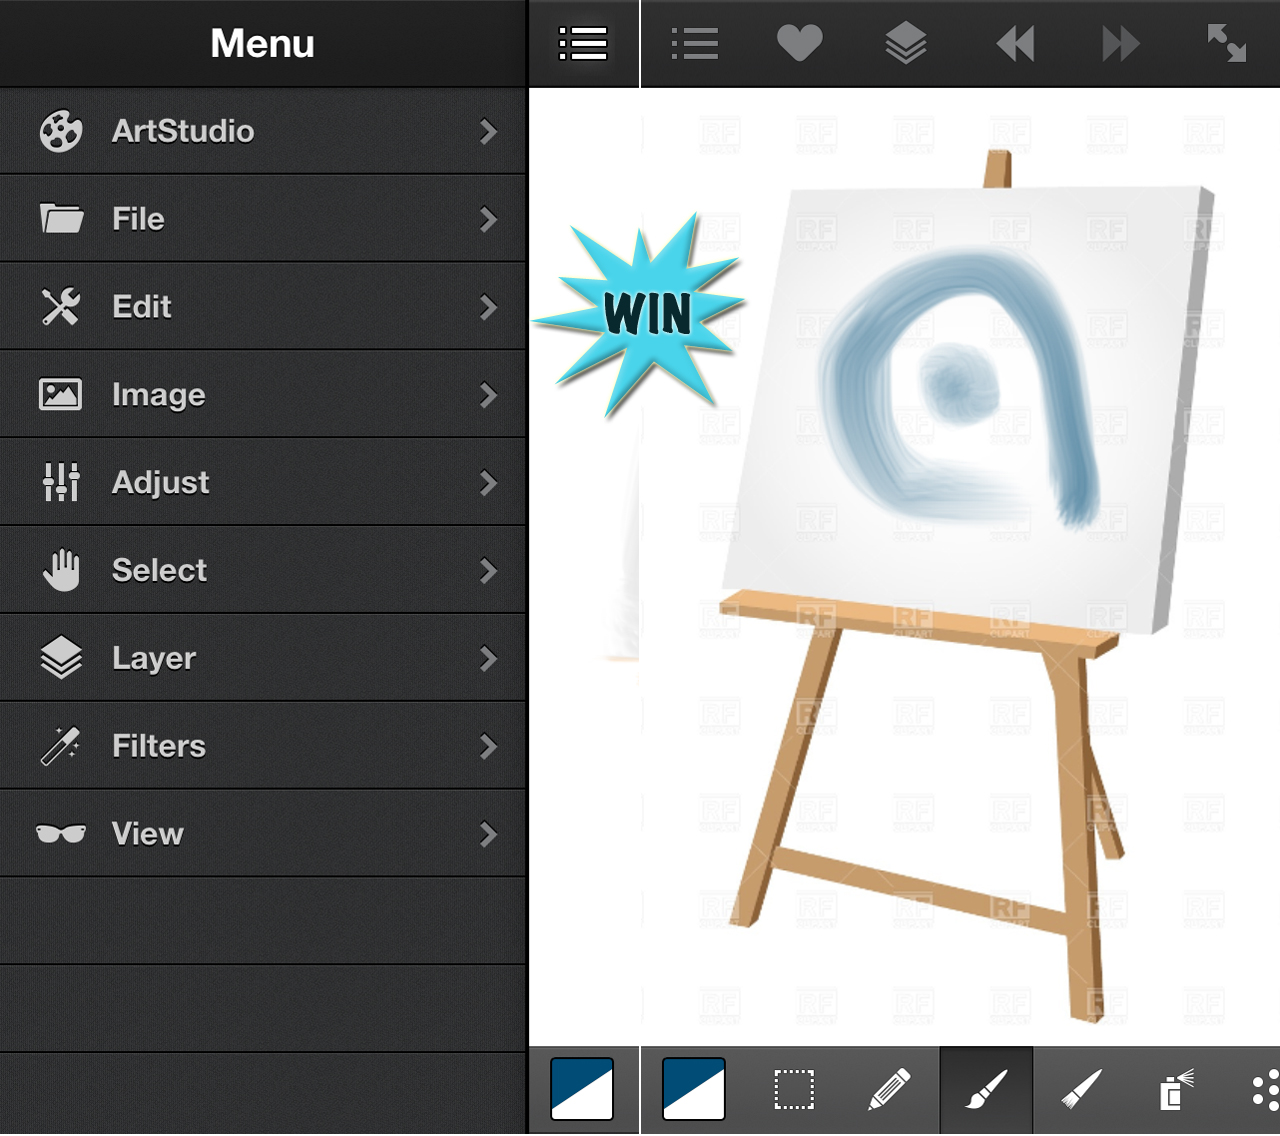 Gain Extensive Image Creation And Editing Tools By Winning ArtStudio For iPhone